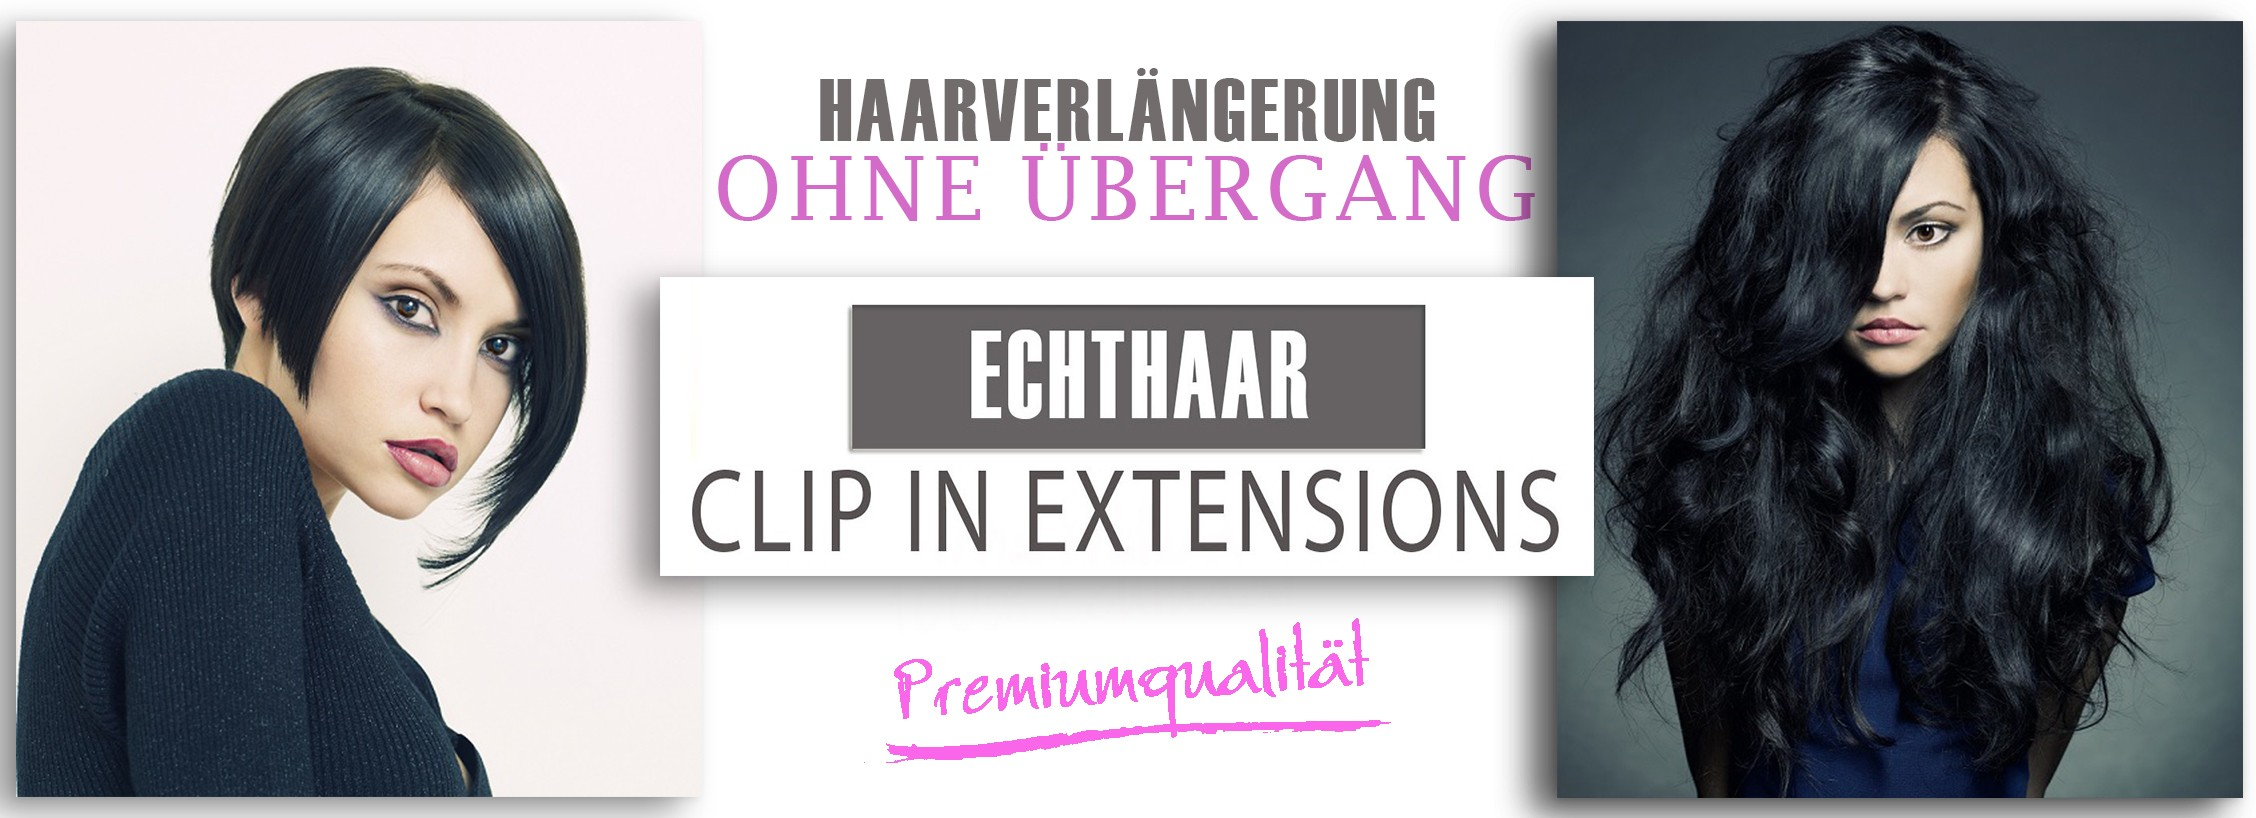 ECHTHAAR CLIP IN EXTENSIONS